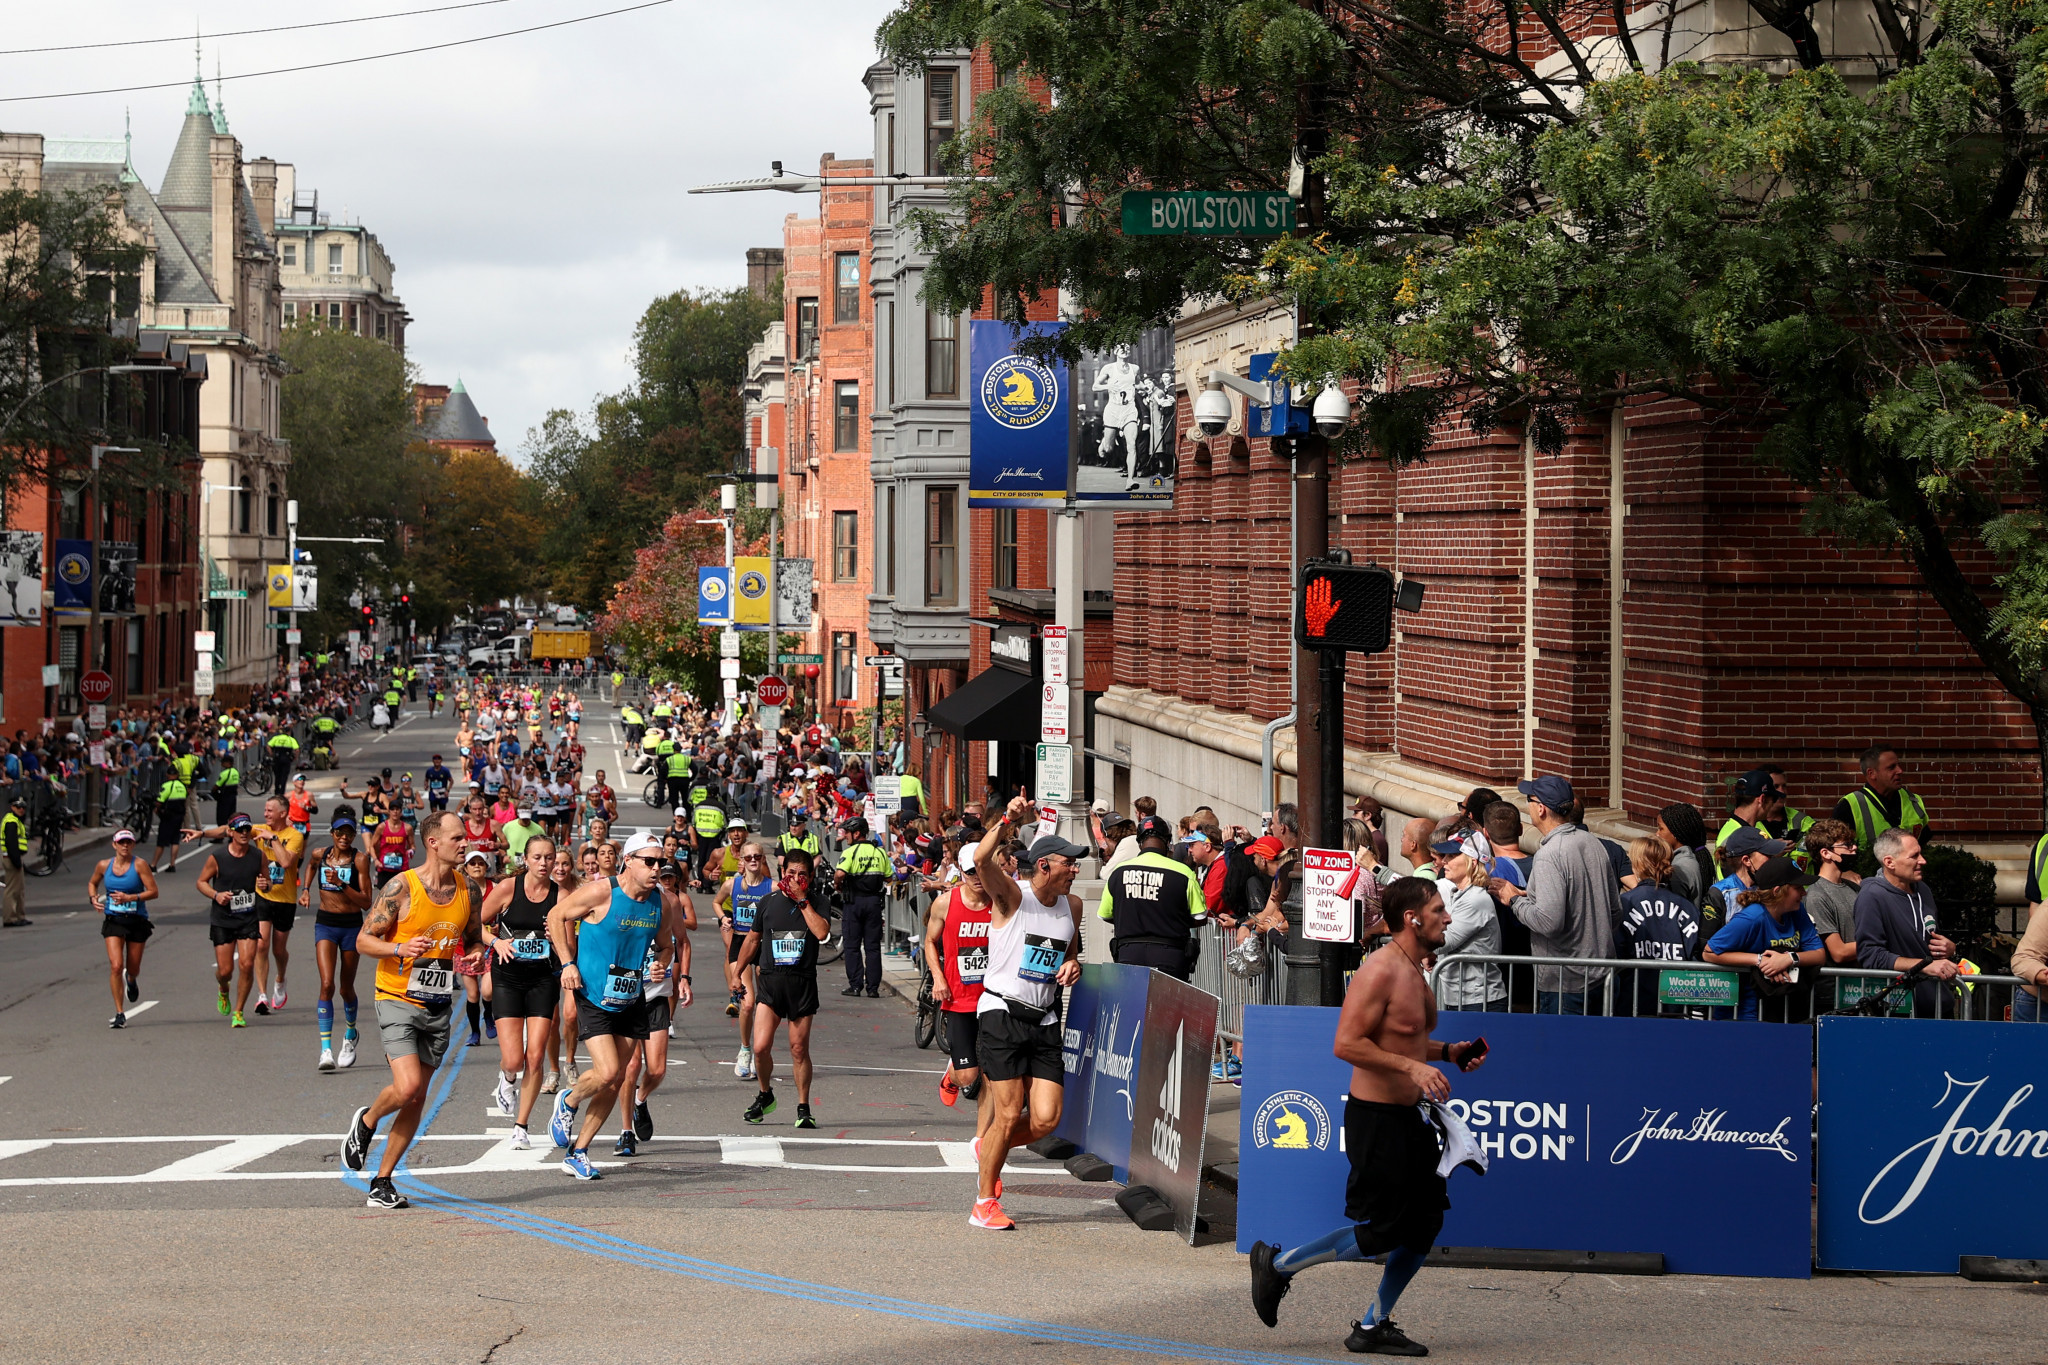 Boston Marathon reveals 93 per cent of runners were fully vaccinated against COVID-19